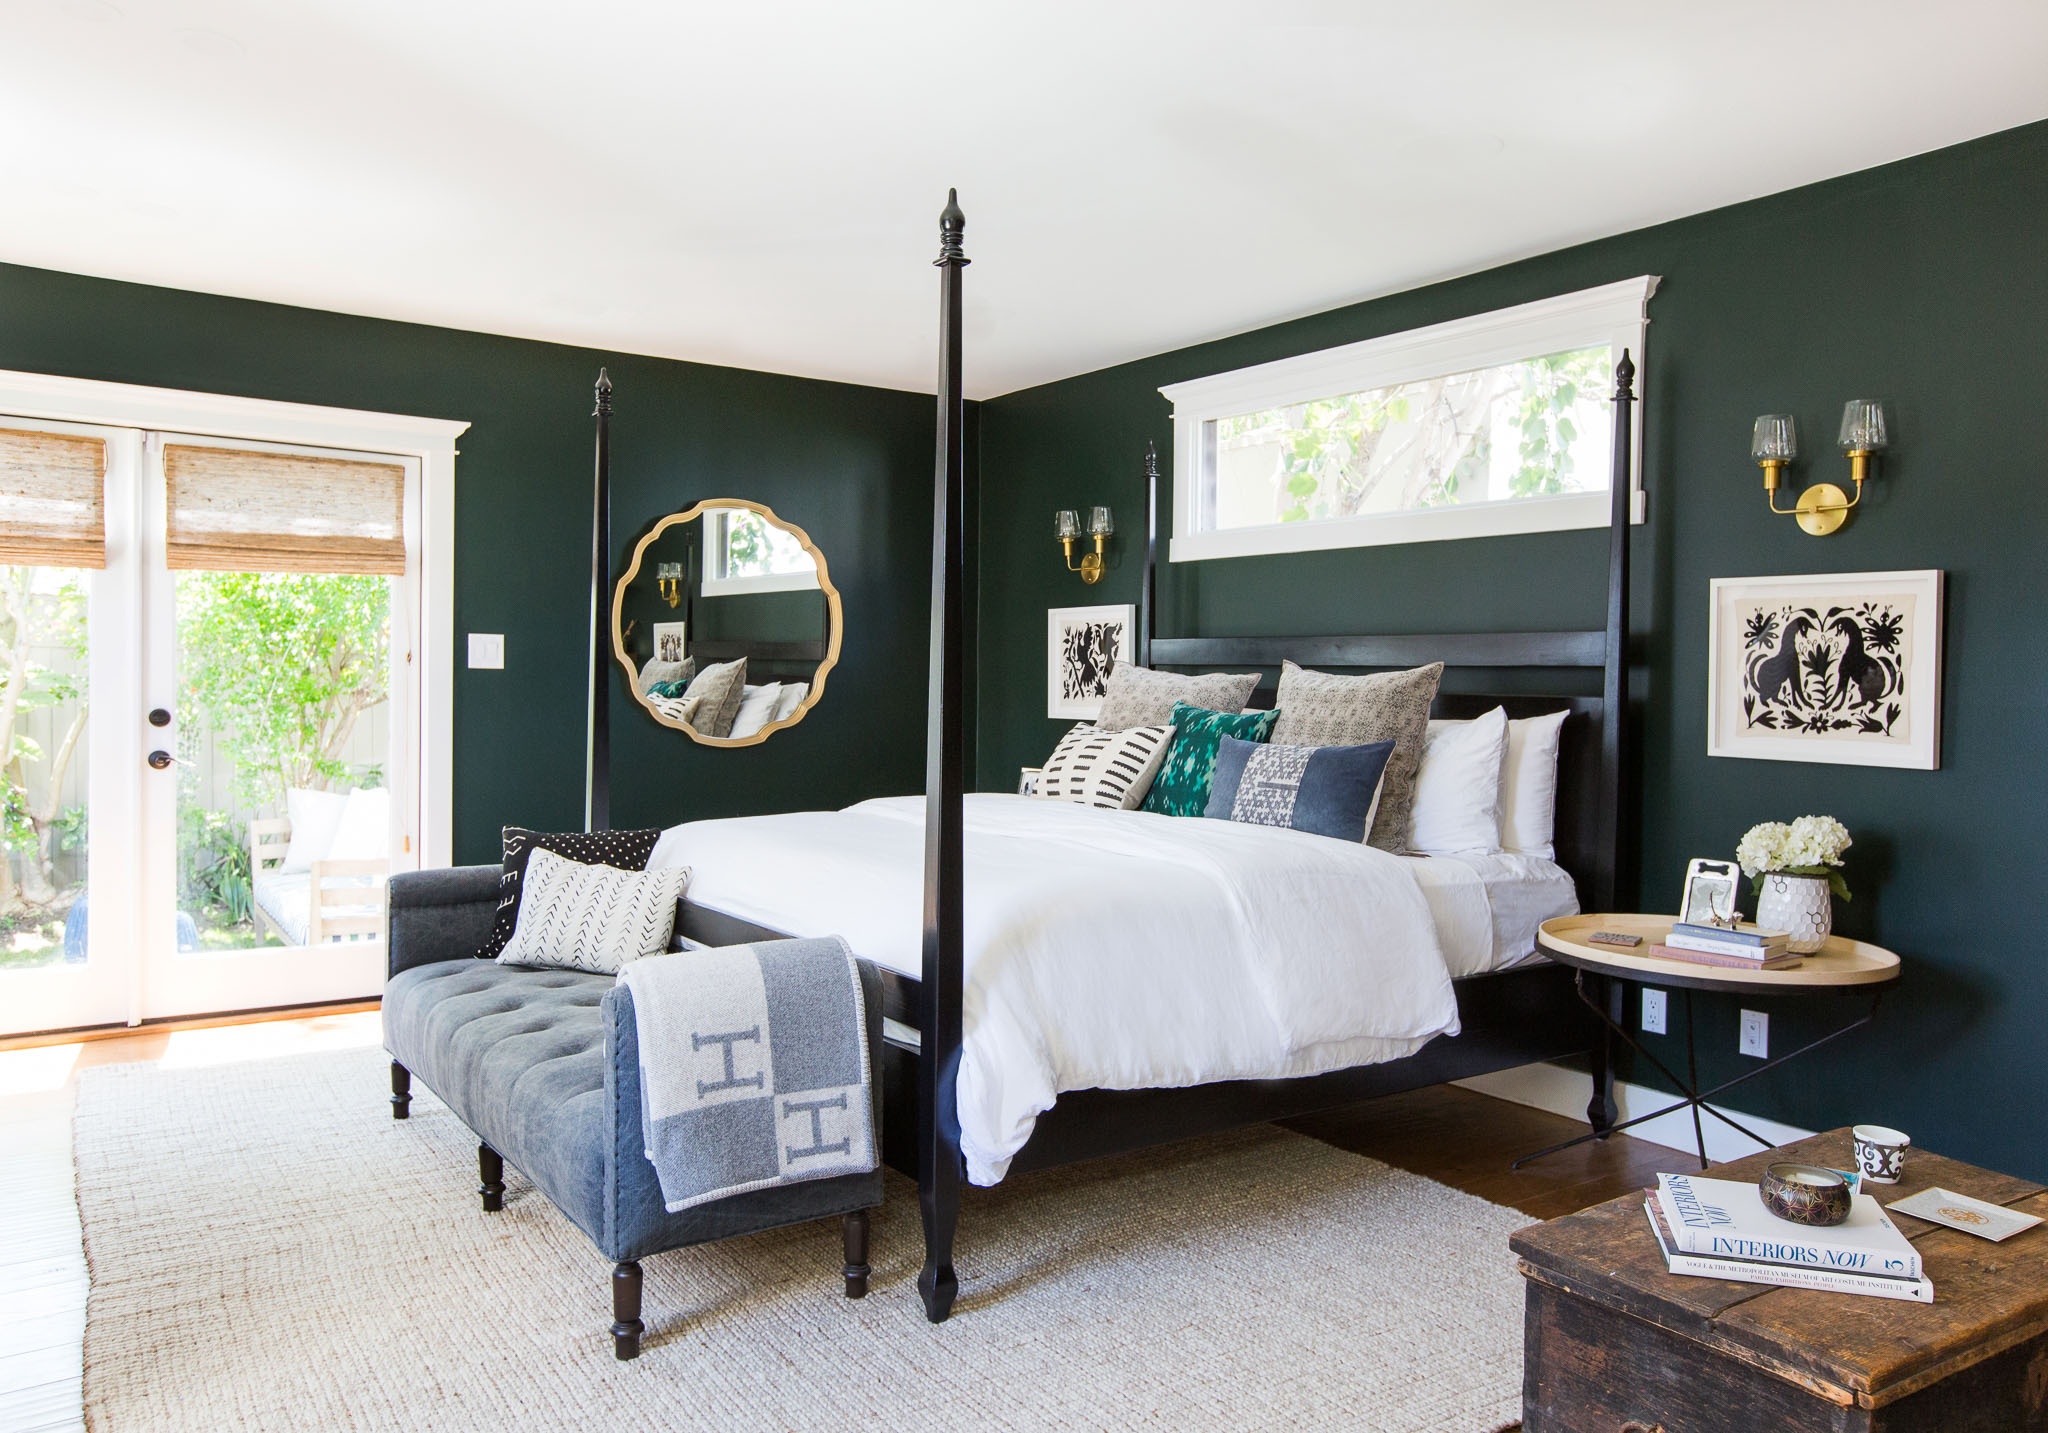 A master suite with four-poster bed, rich-toned walls and woven wood shades